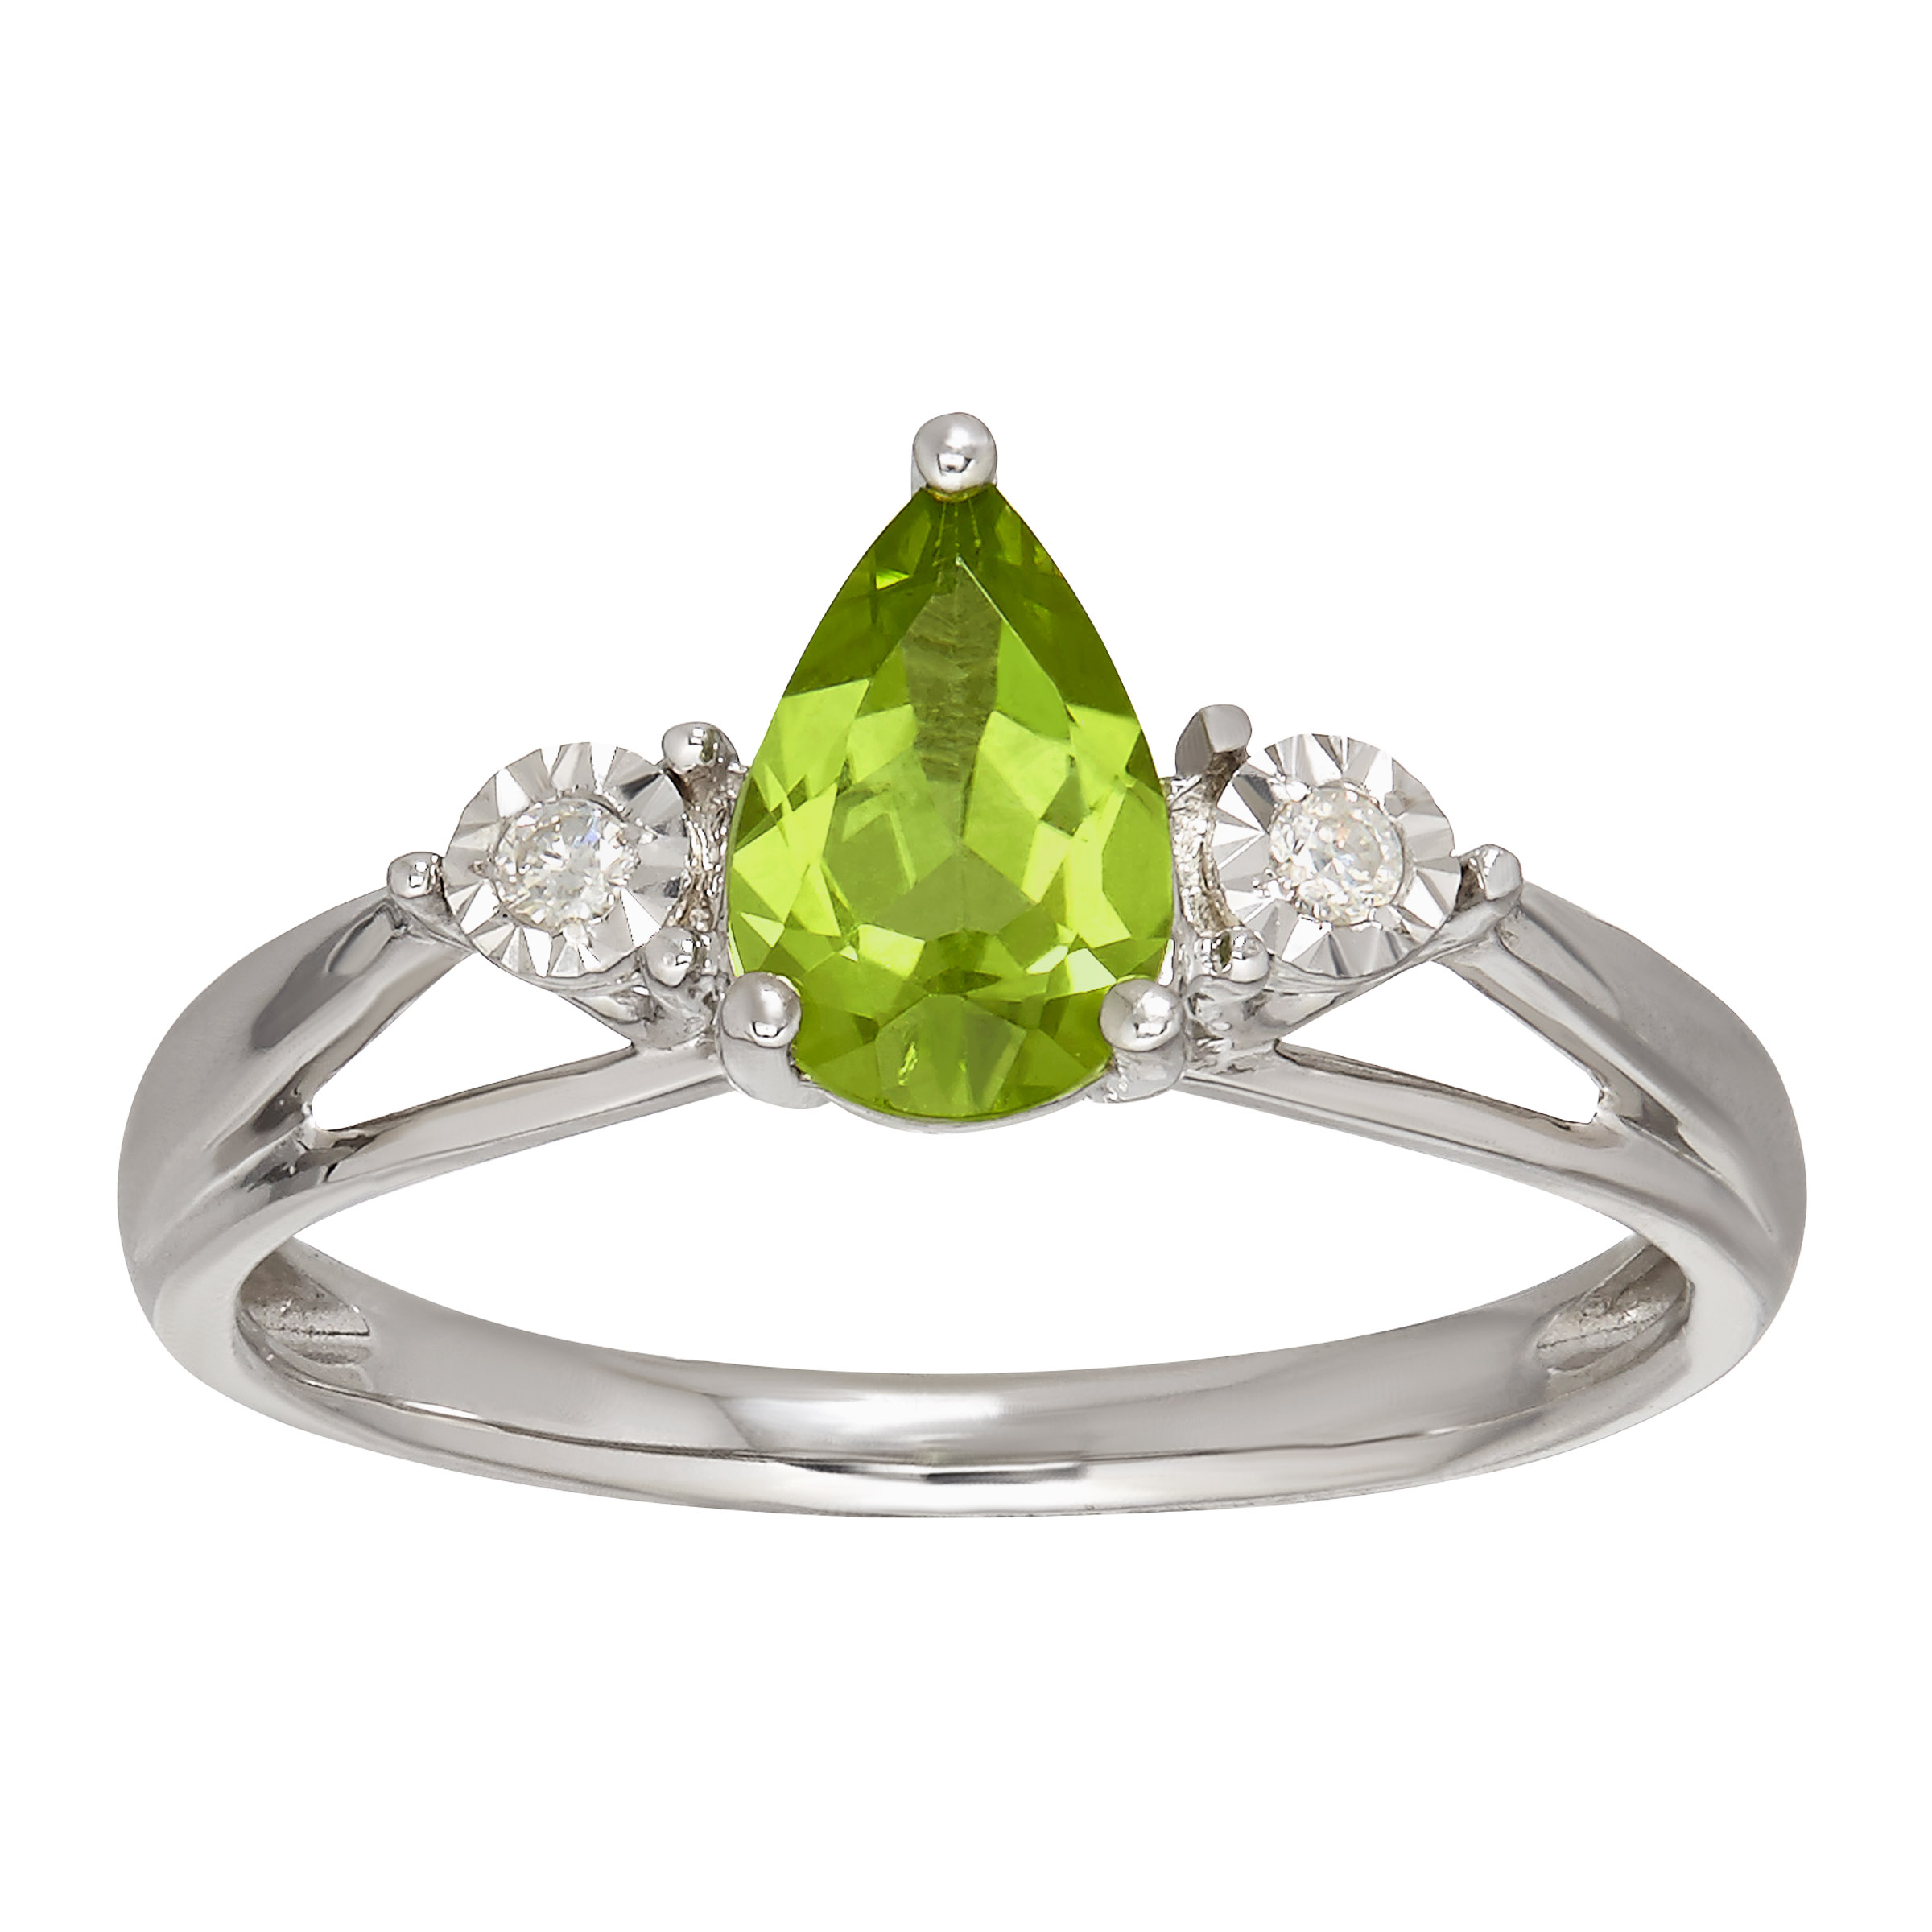 1 ct Natural Peridot Ring with Diamonds in 10kt Gold by Richline Group